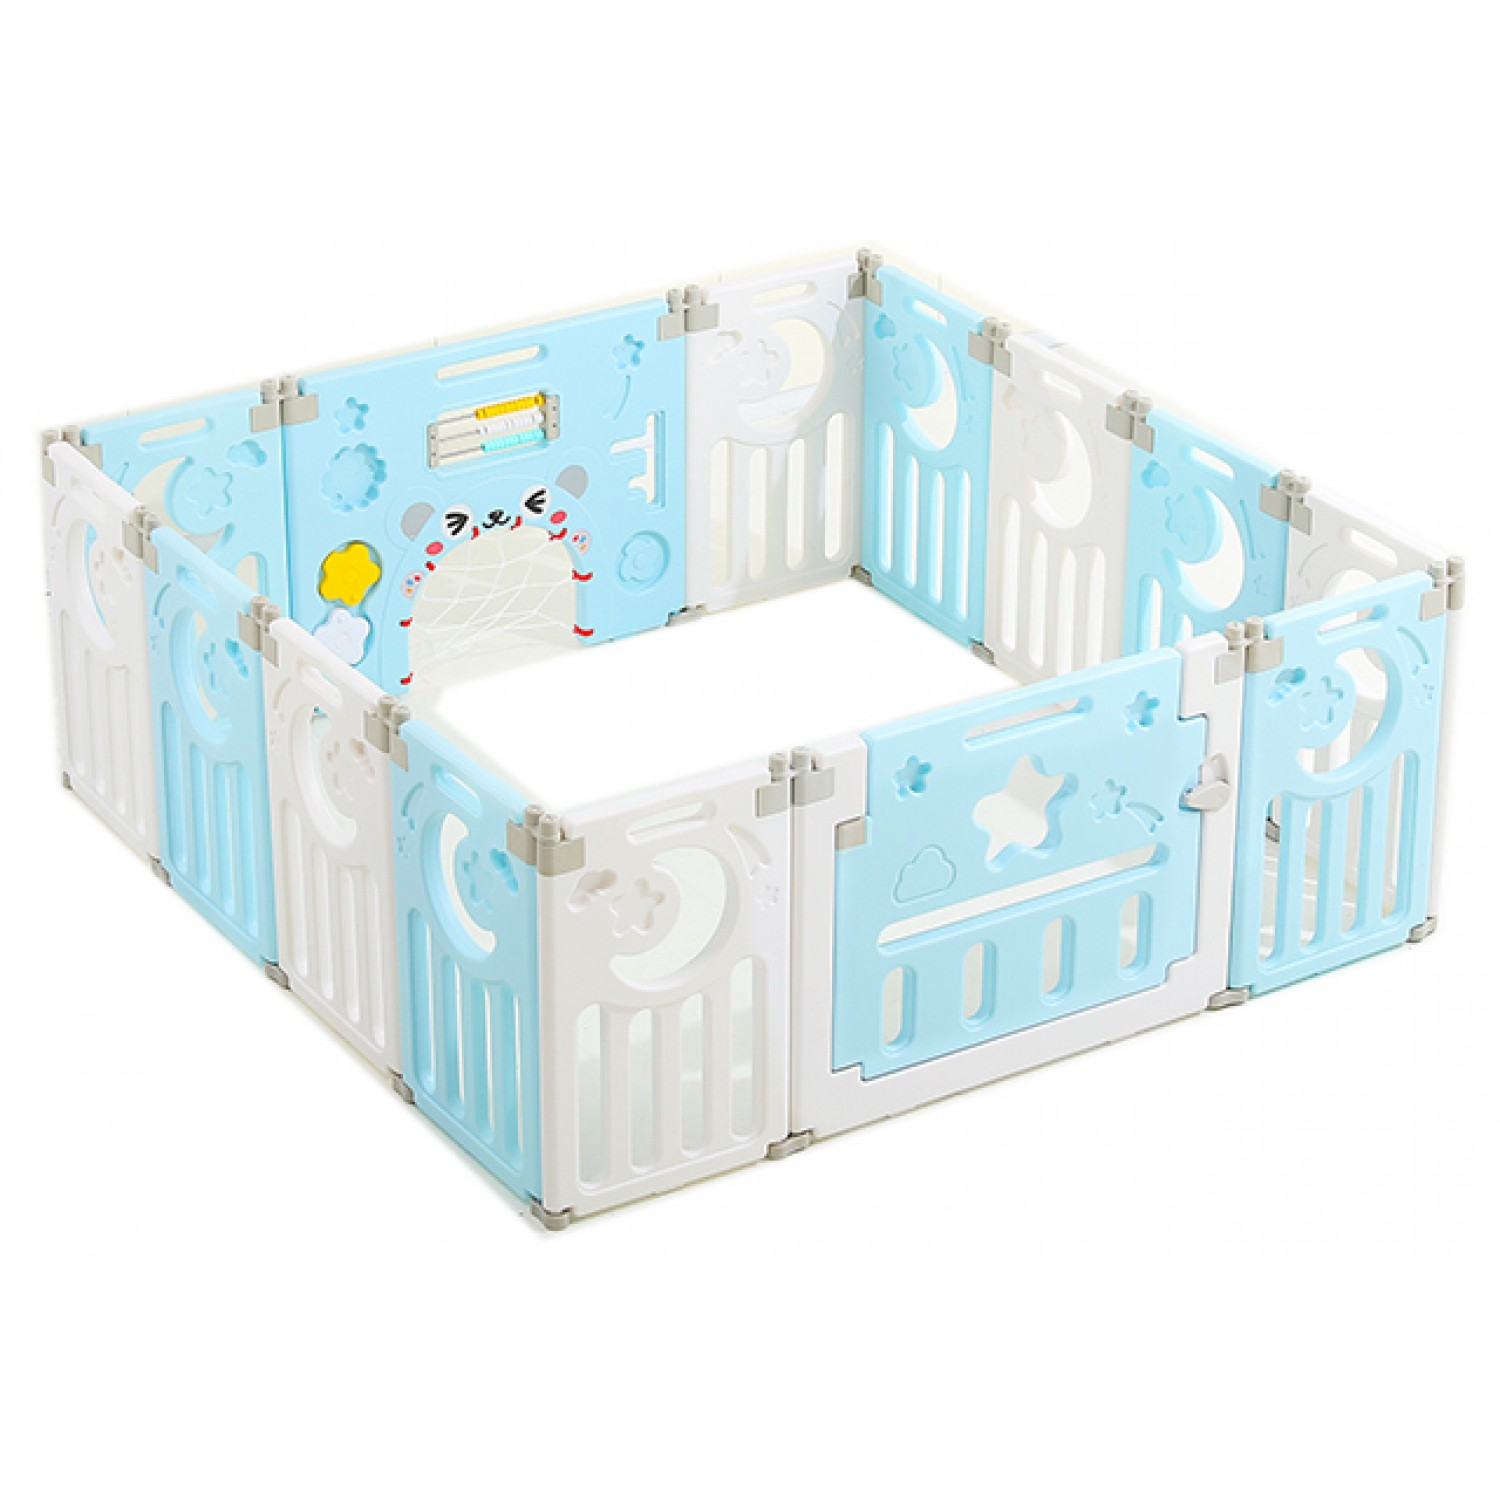 Plastic Children S 220x220cm Removable Indoor Playground Plastic Baby Play Fence With Best Quality Forall In Blue White Color Ocwl 1 8b